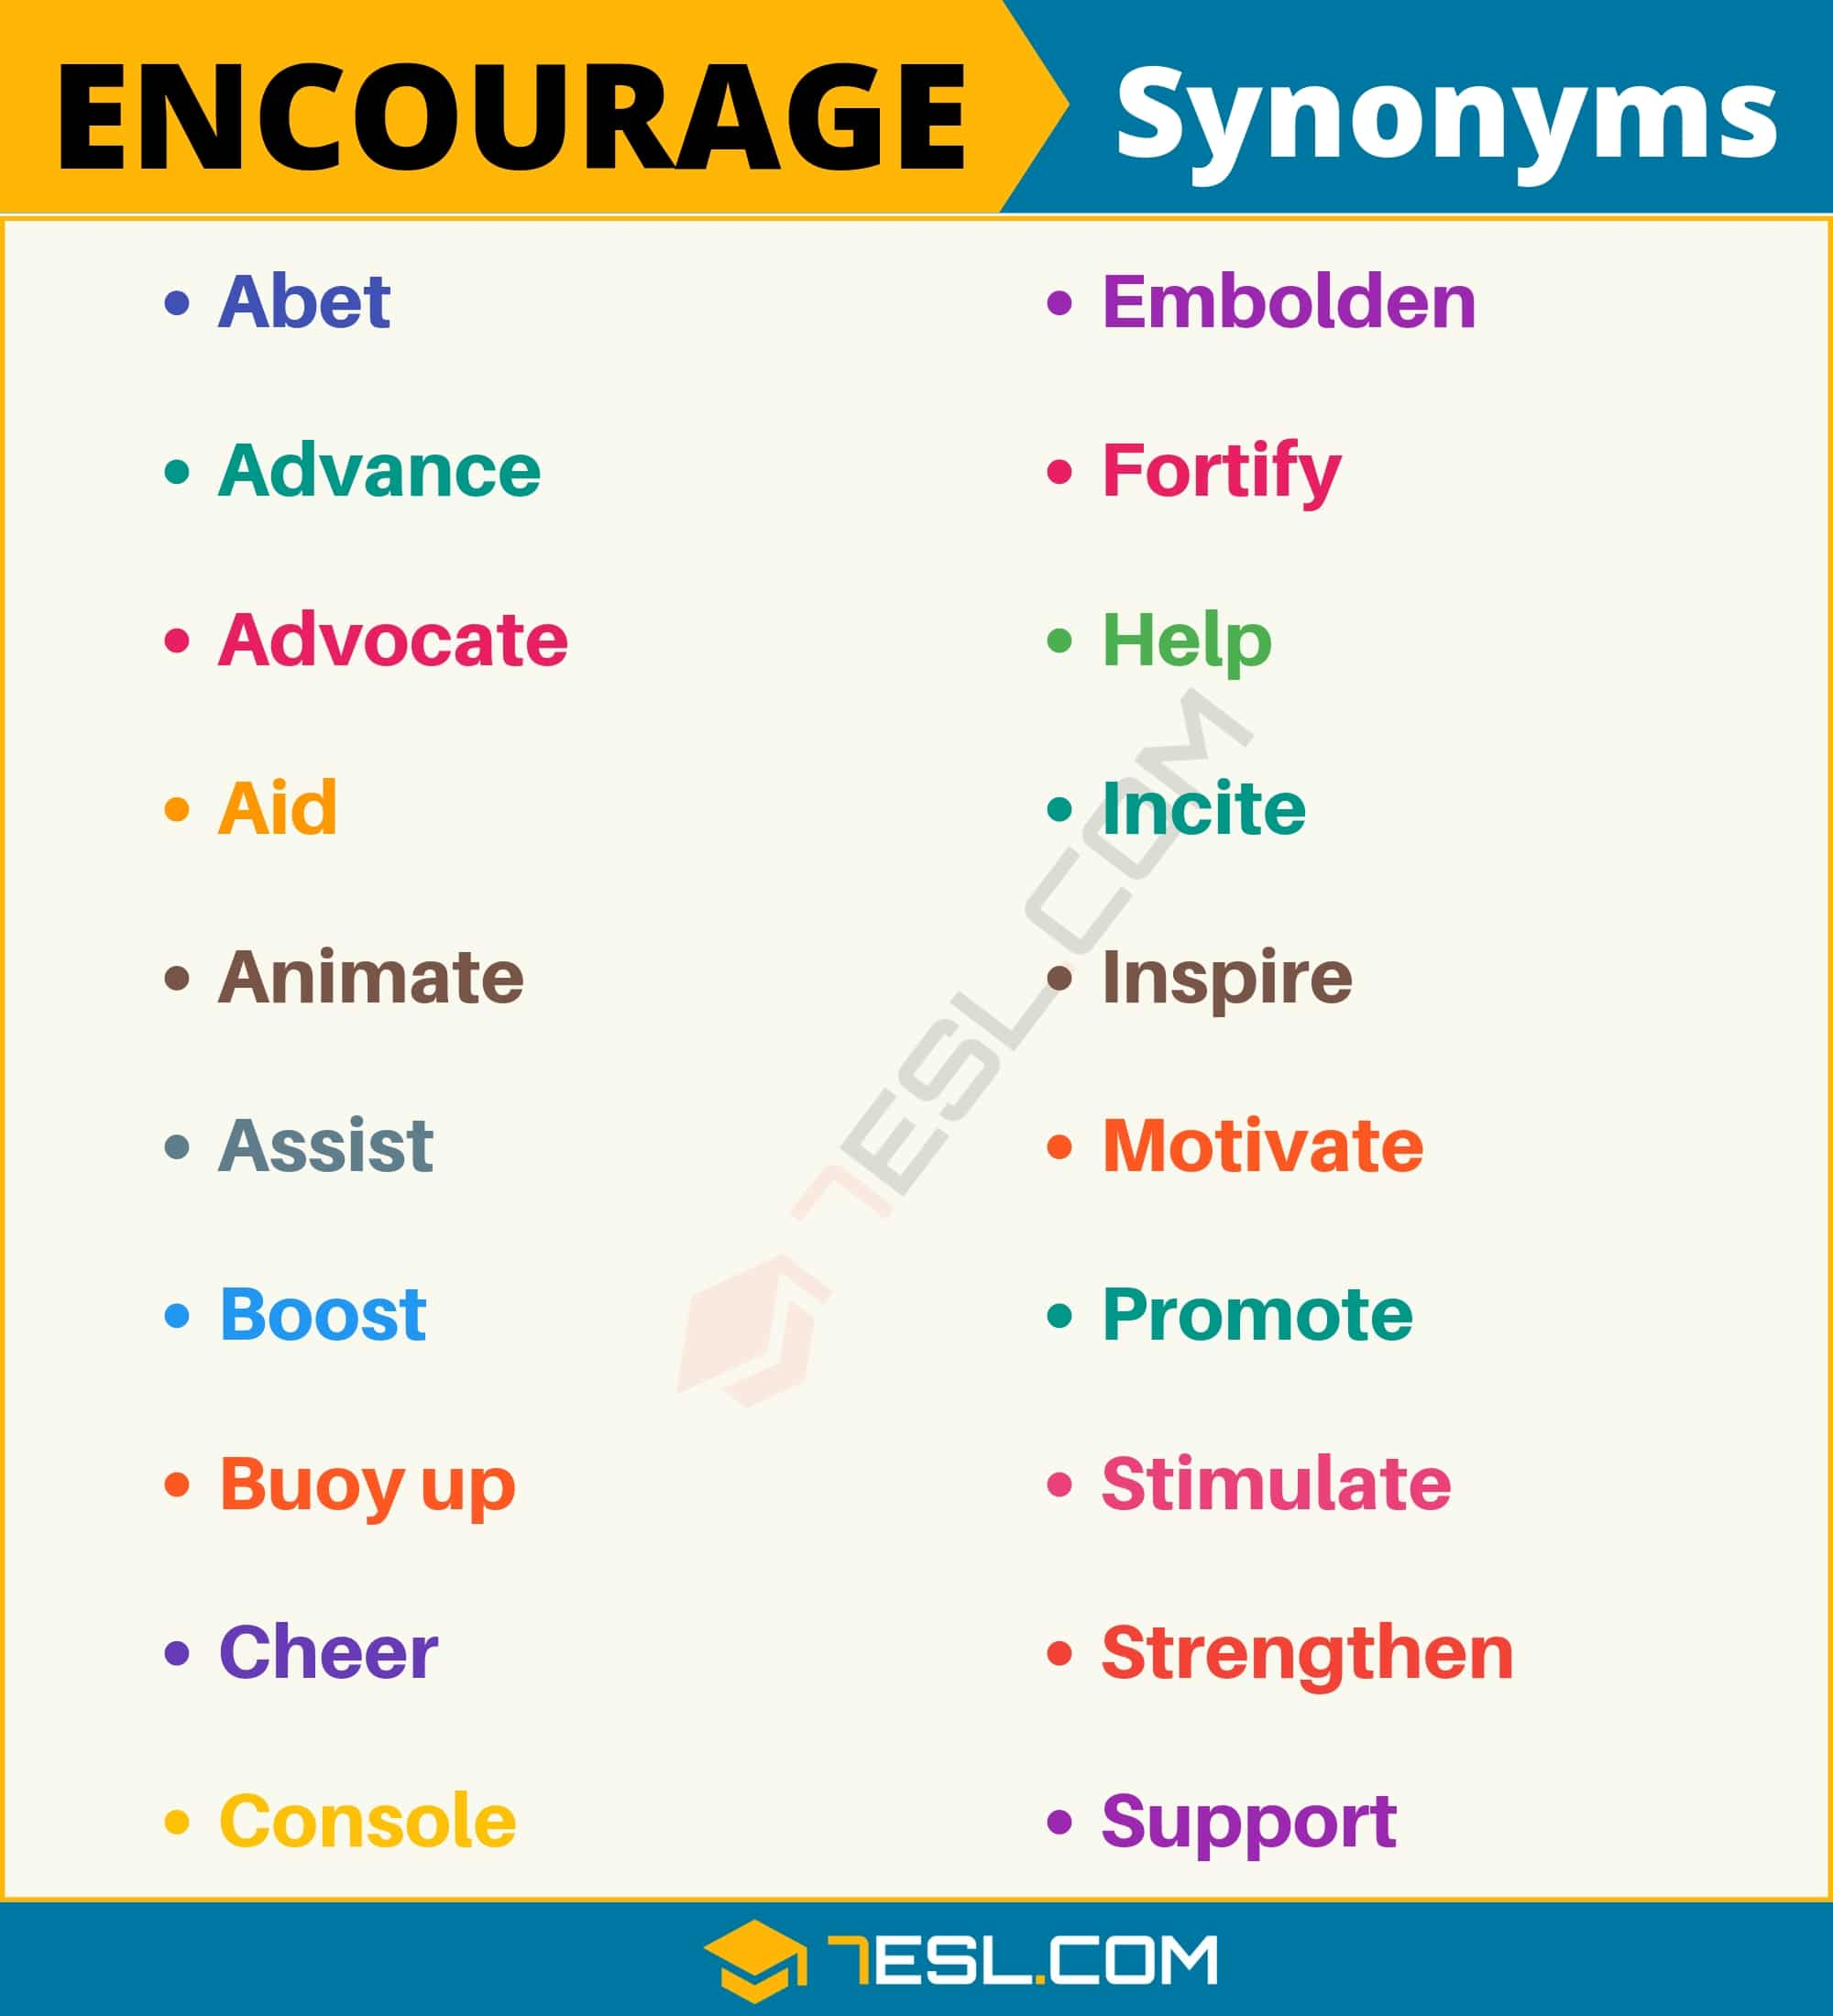 ENCOURAGE Synonym: List of 20 Synonyms for Encourage with Useful Examples